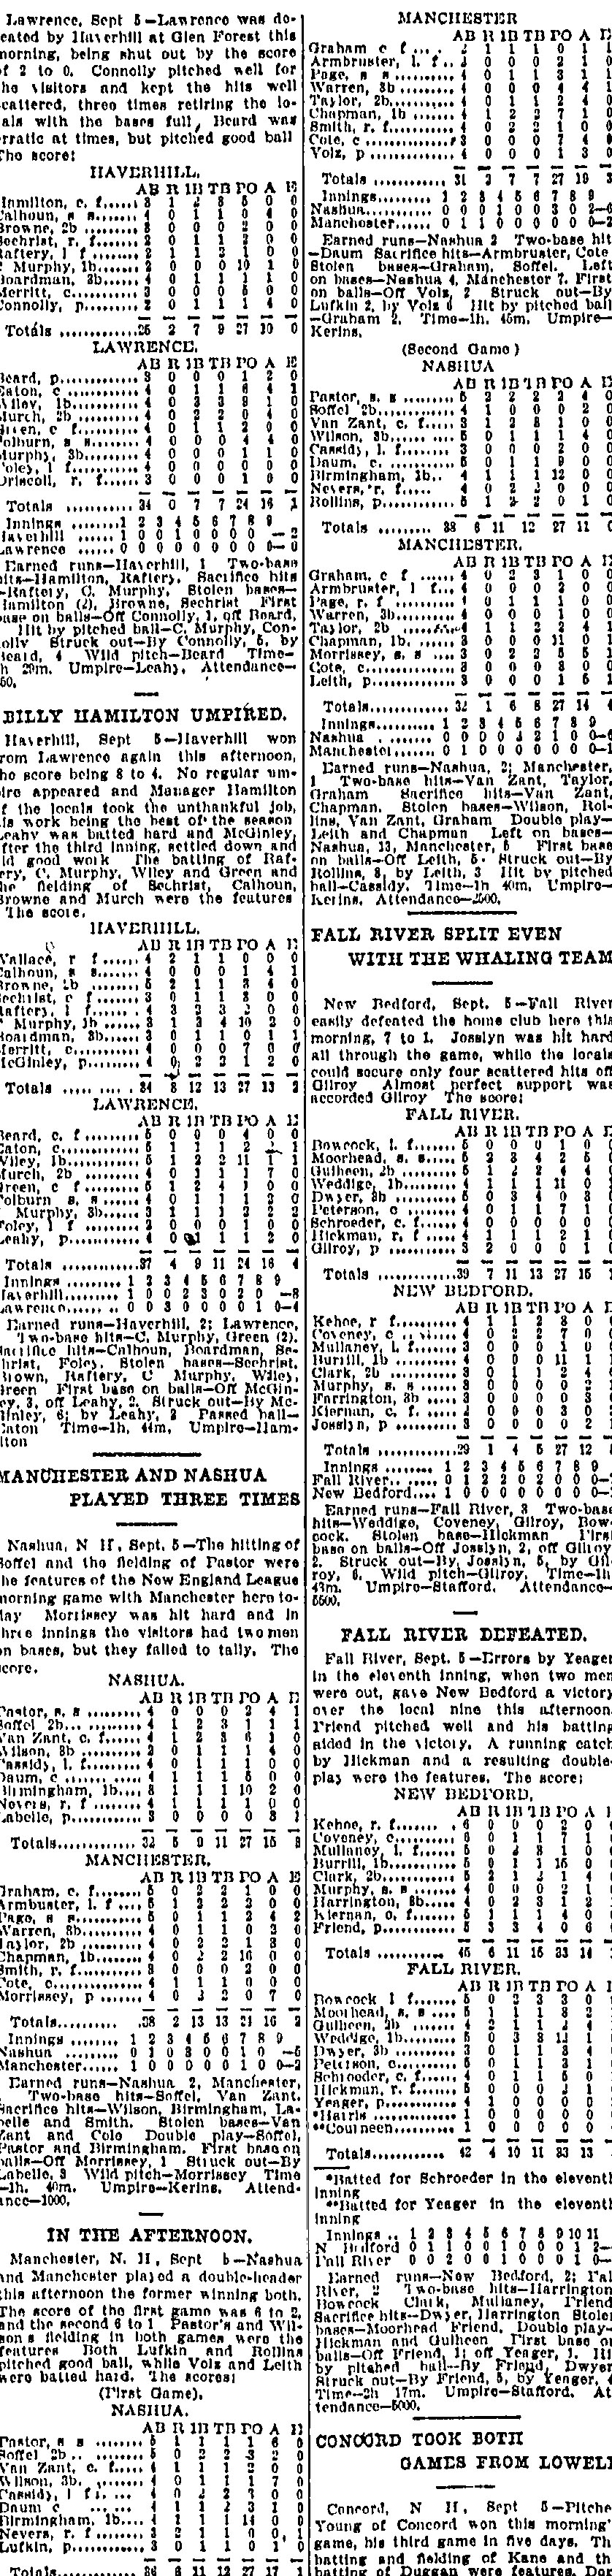 Boston Journal Sept. 6, 1904 New England League